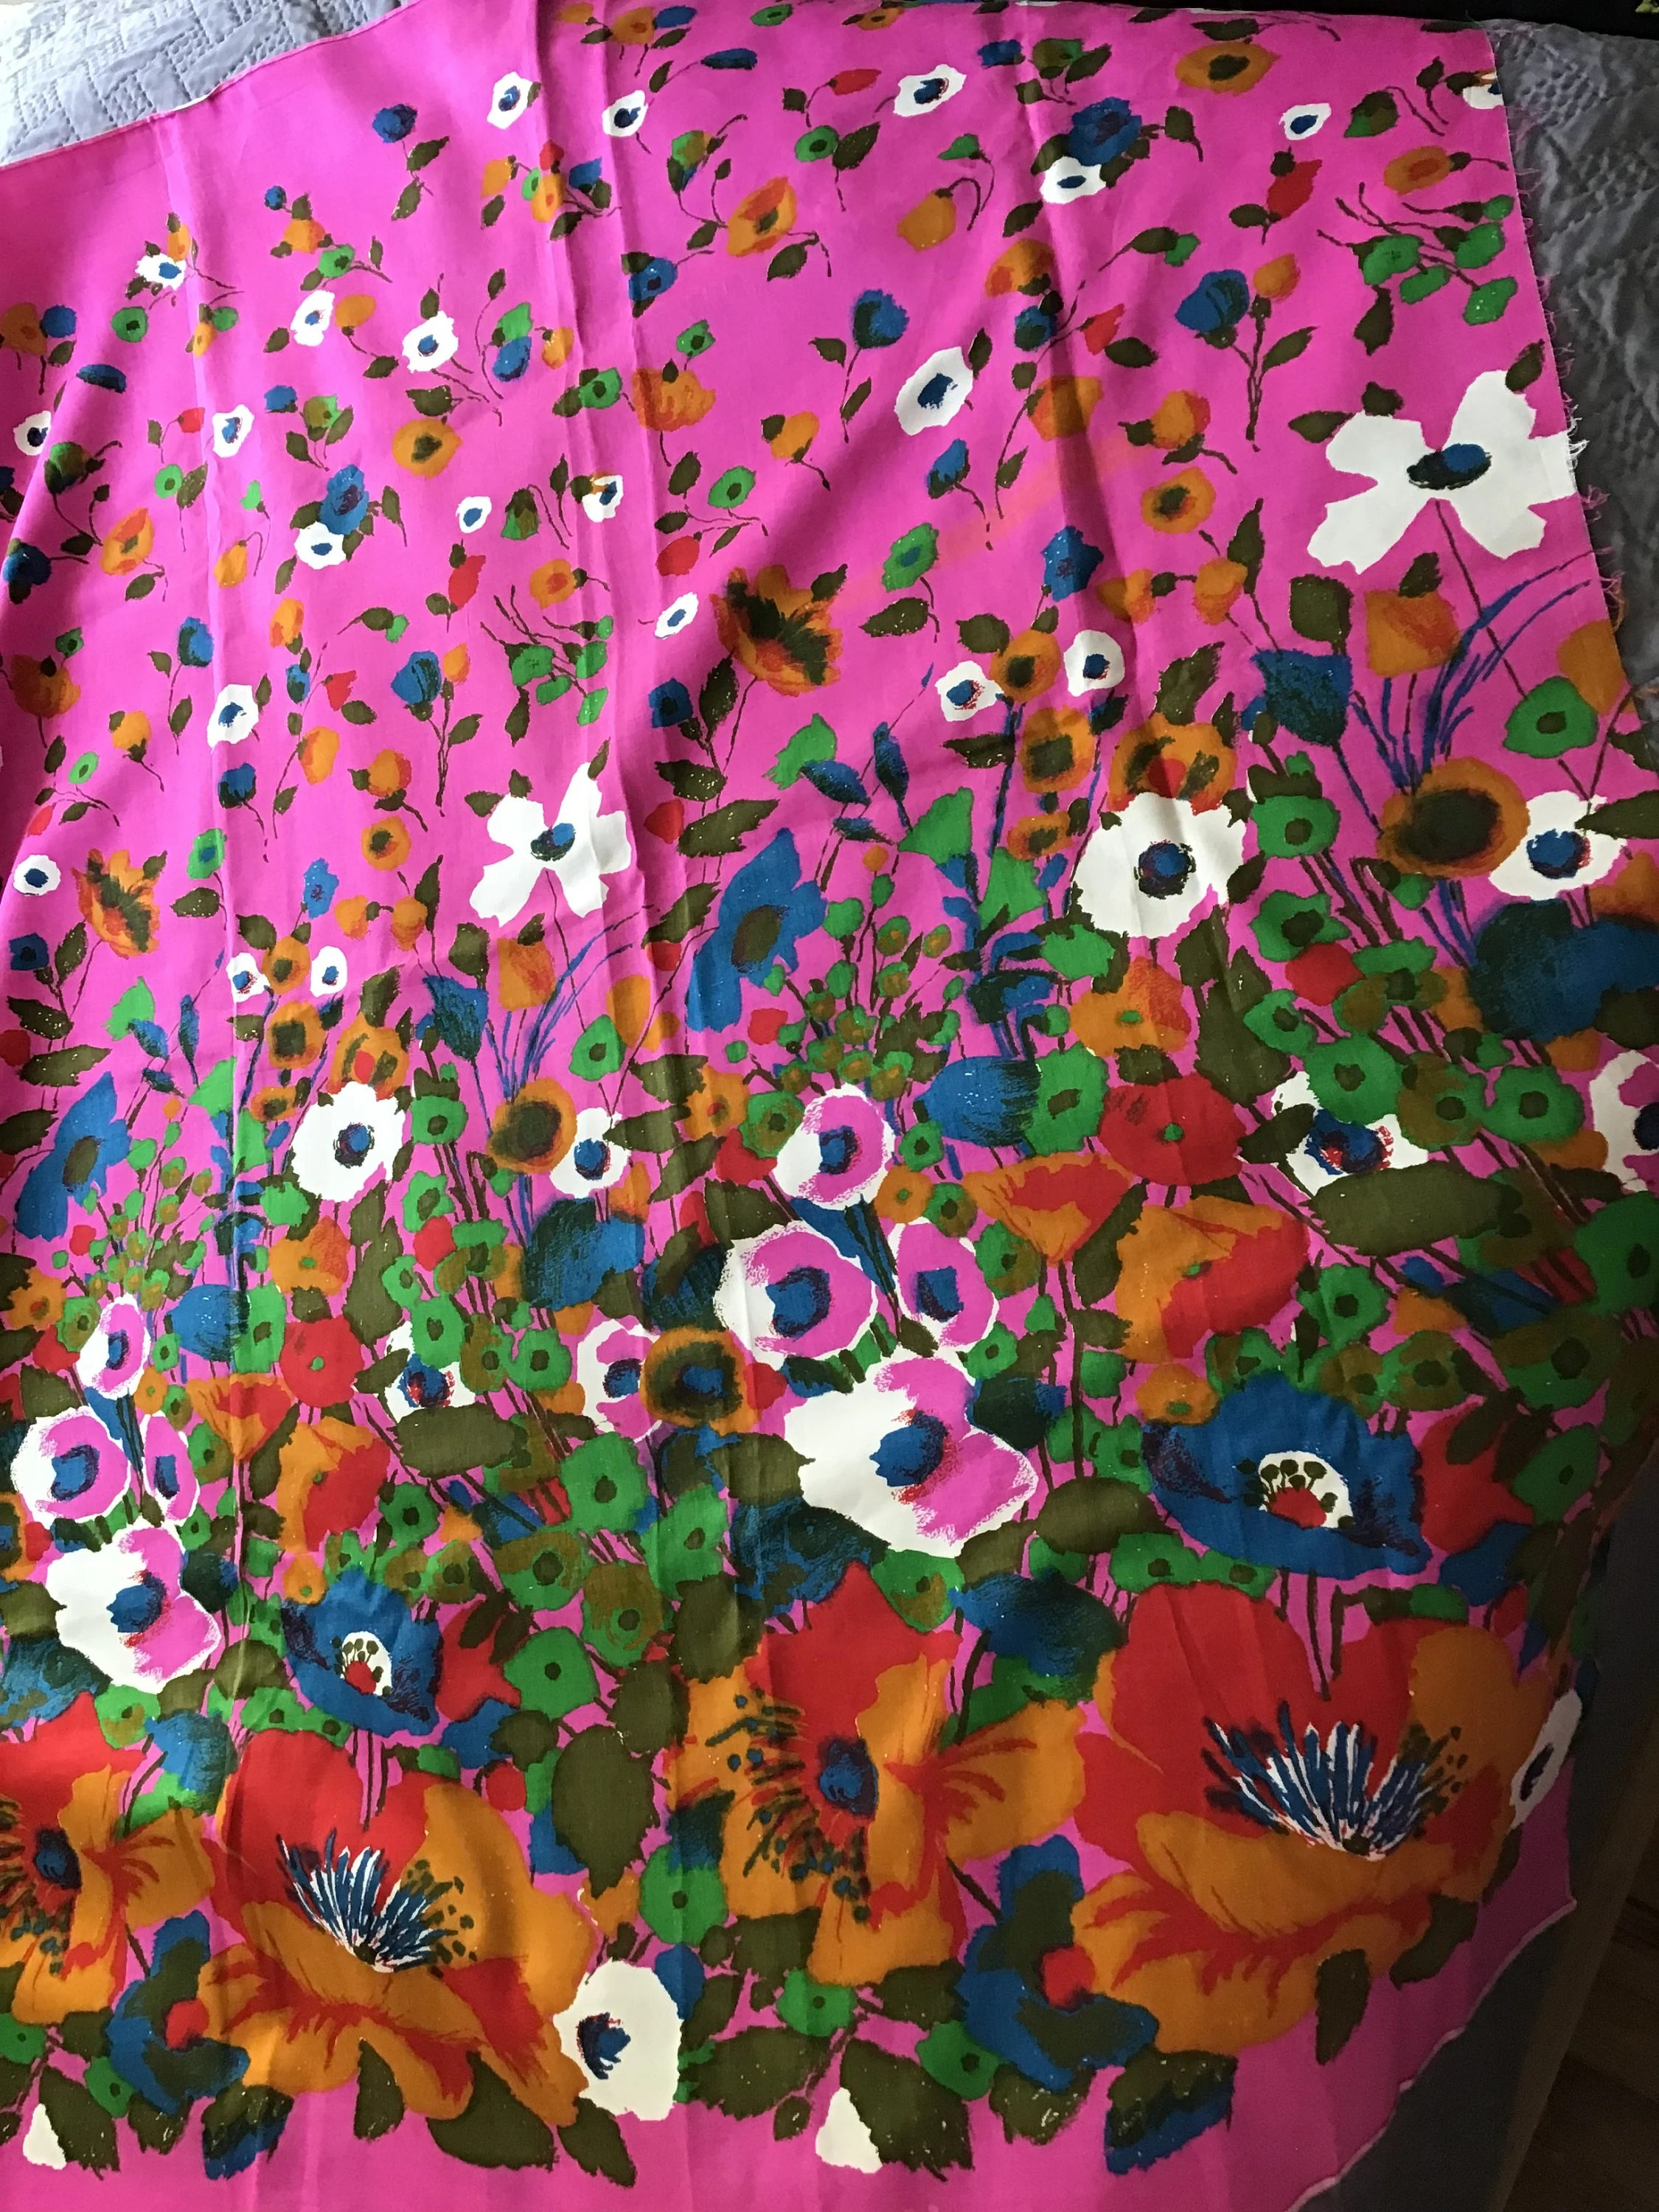 4 Yards Of Fabric : yards, fabric, Yards, Floral, Printed, Cotton, Fabric